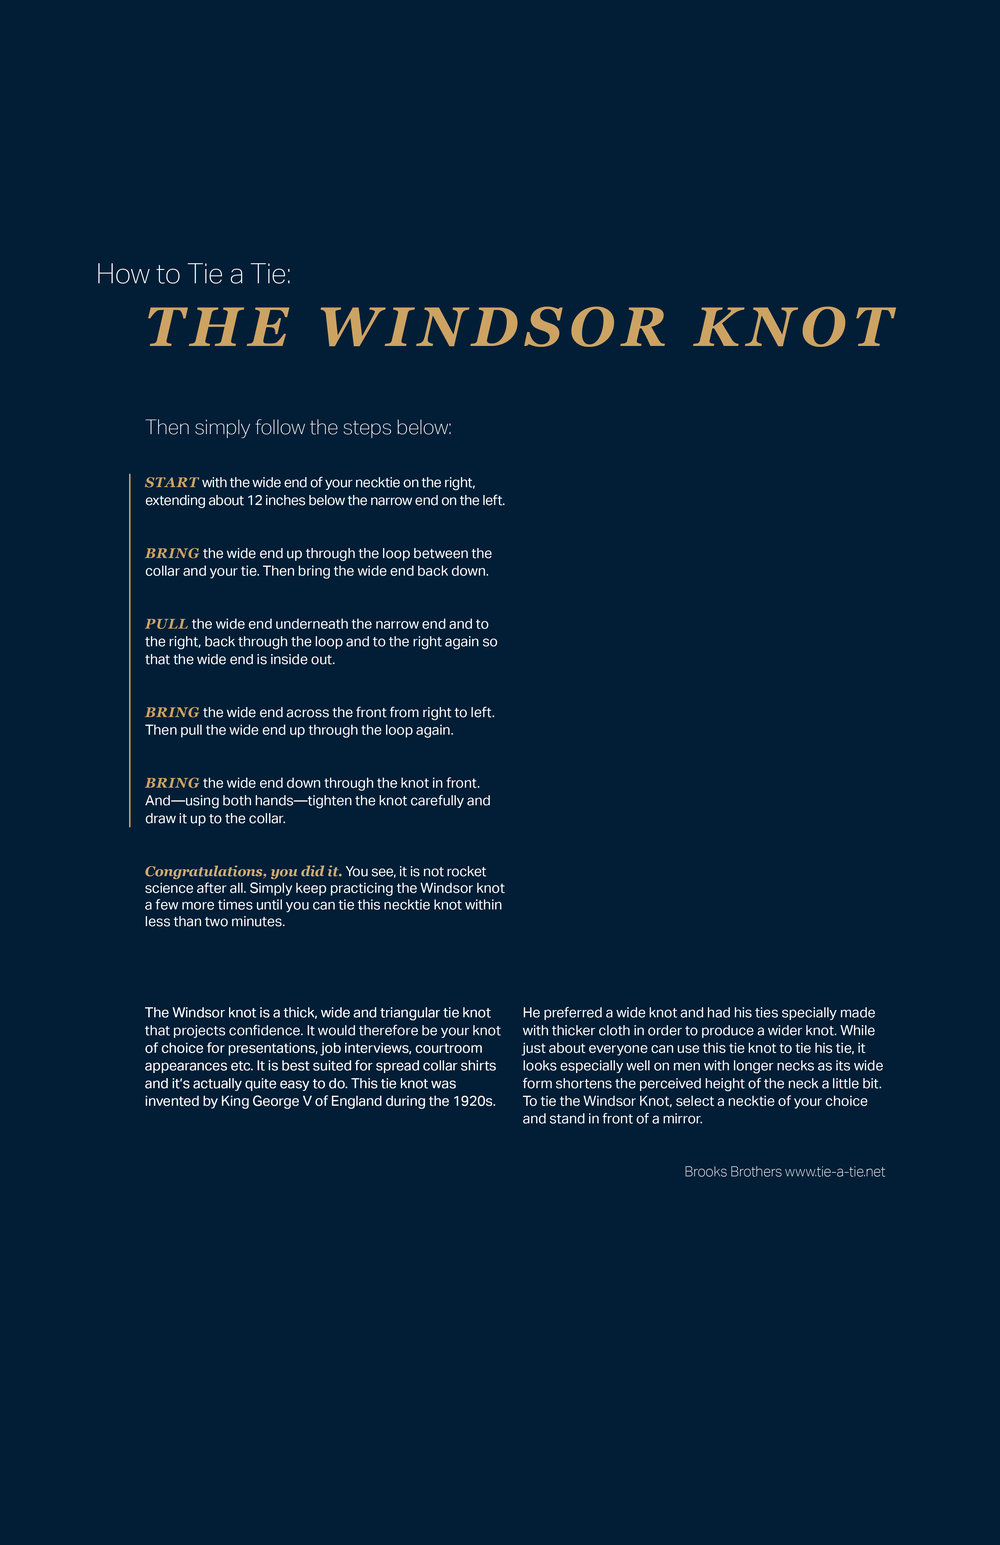 TheWindsorKnotColor.jpg